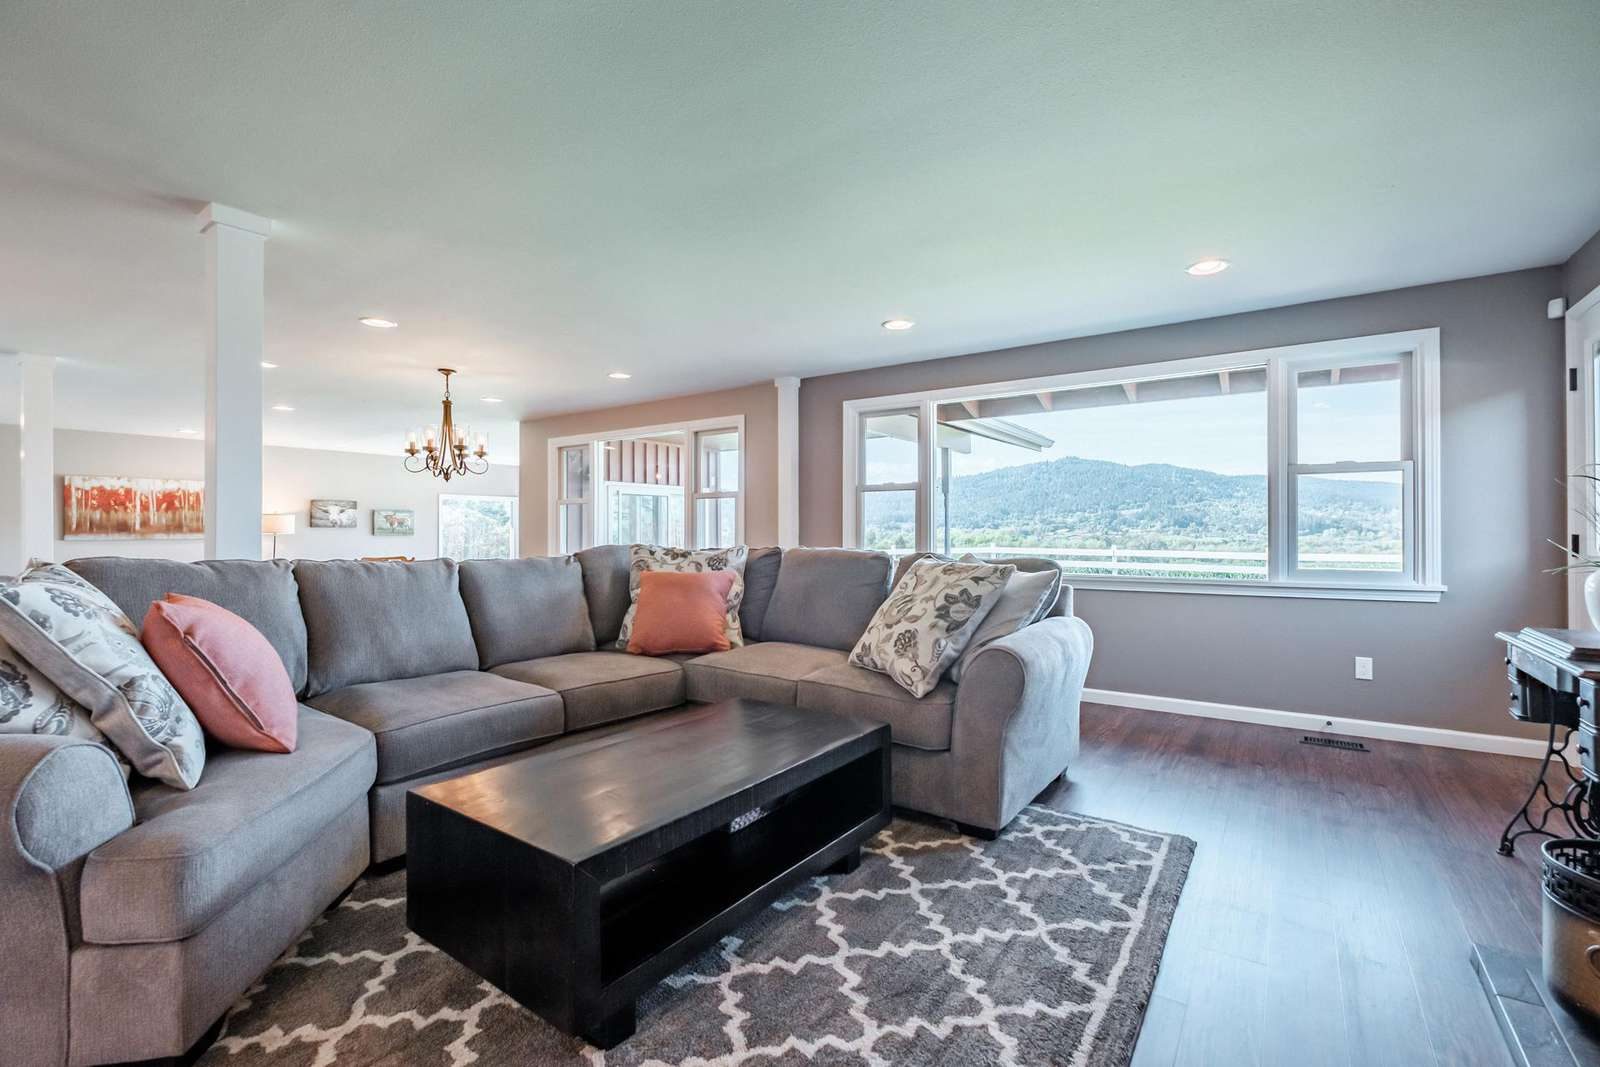 Separate sitting area with sectional couch, fireplace and  HDTV.